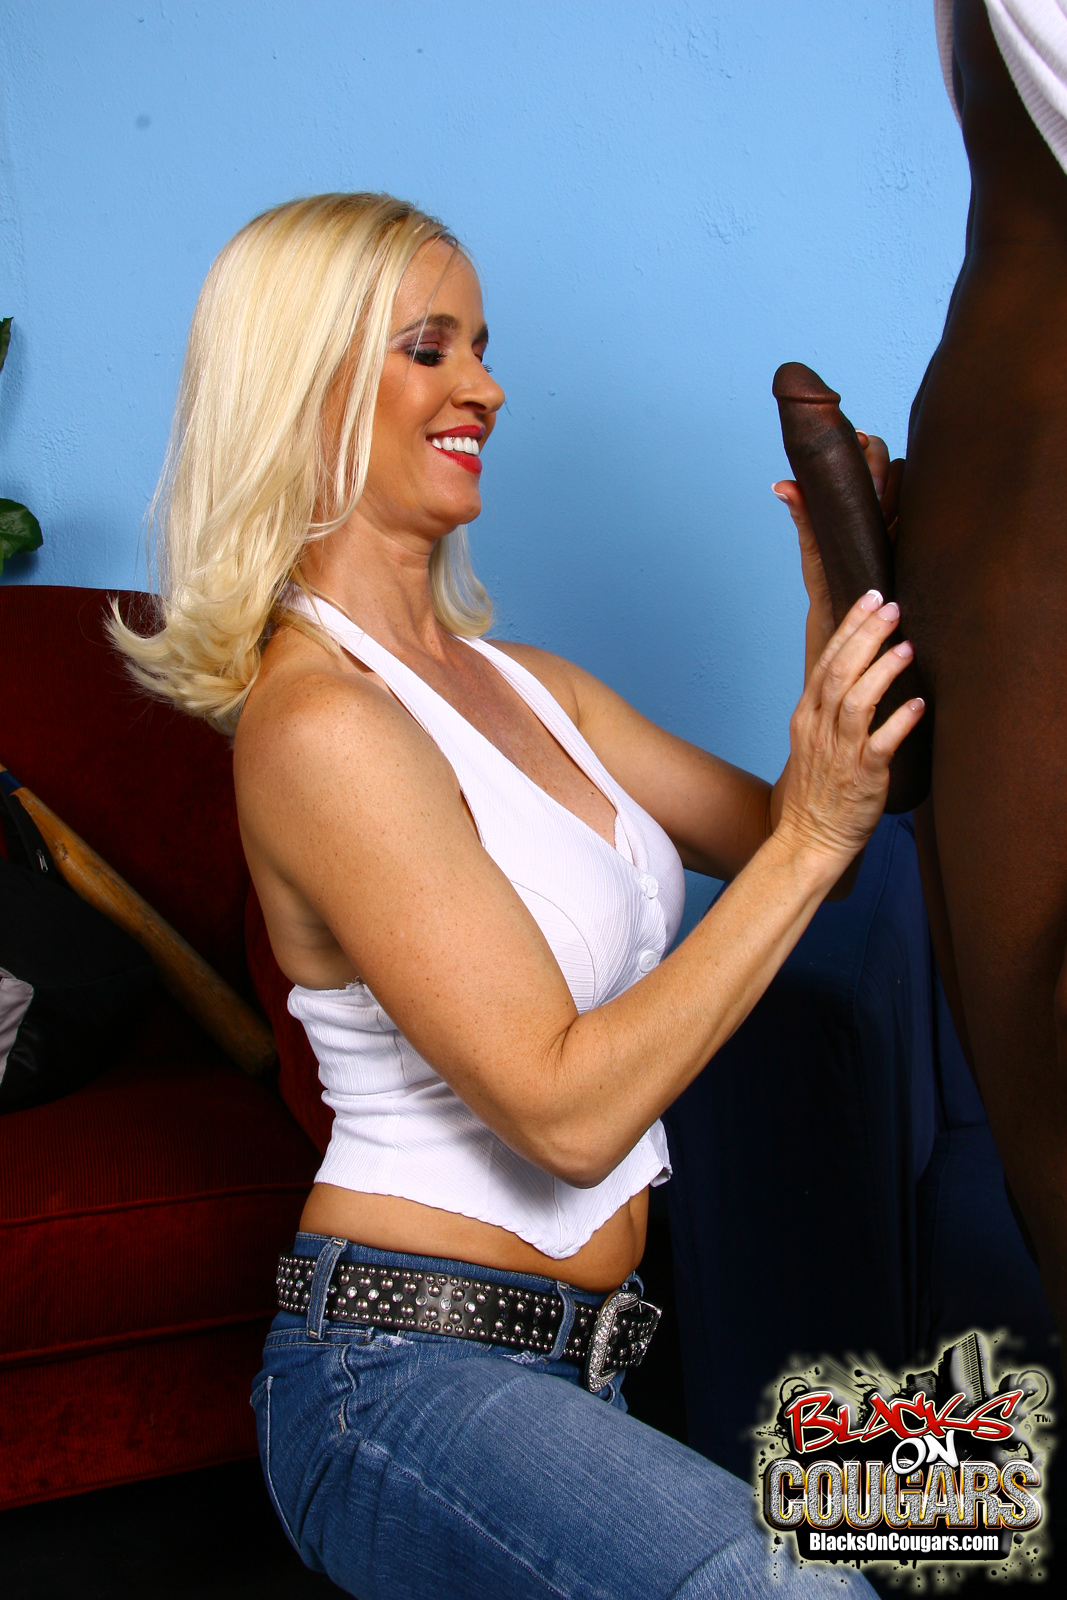 Think, that Cougars like it black simply